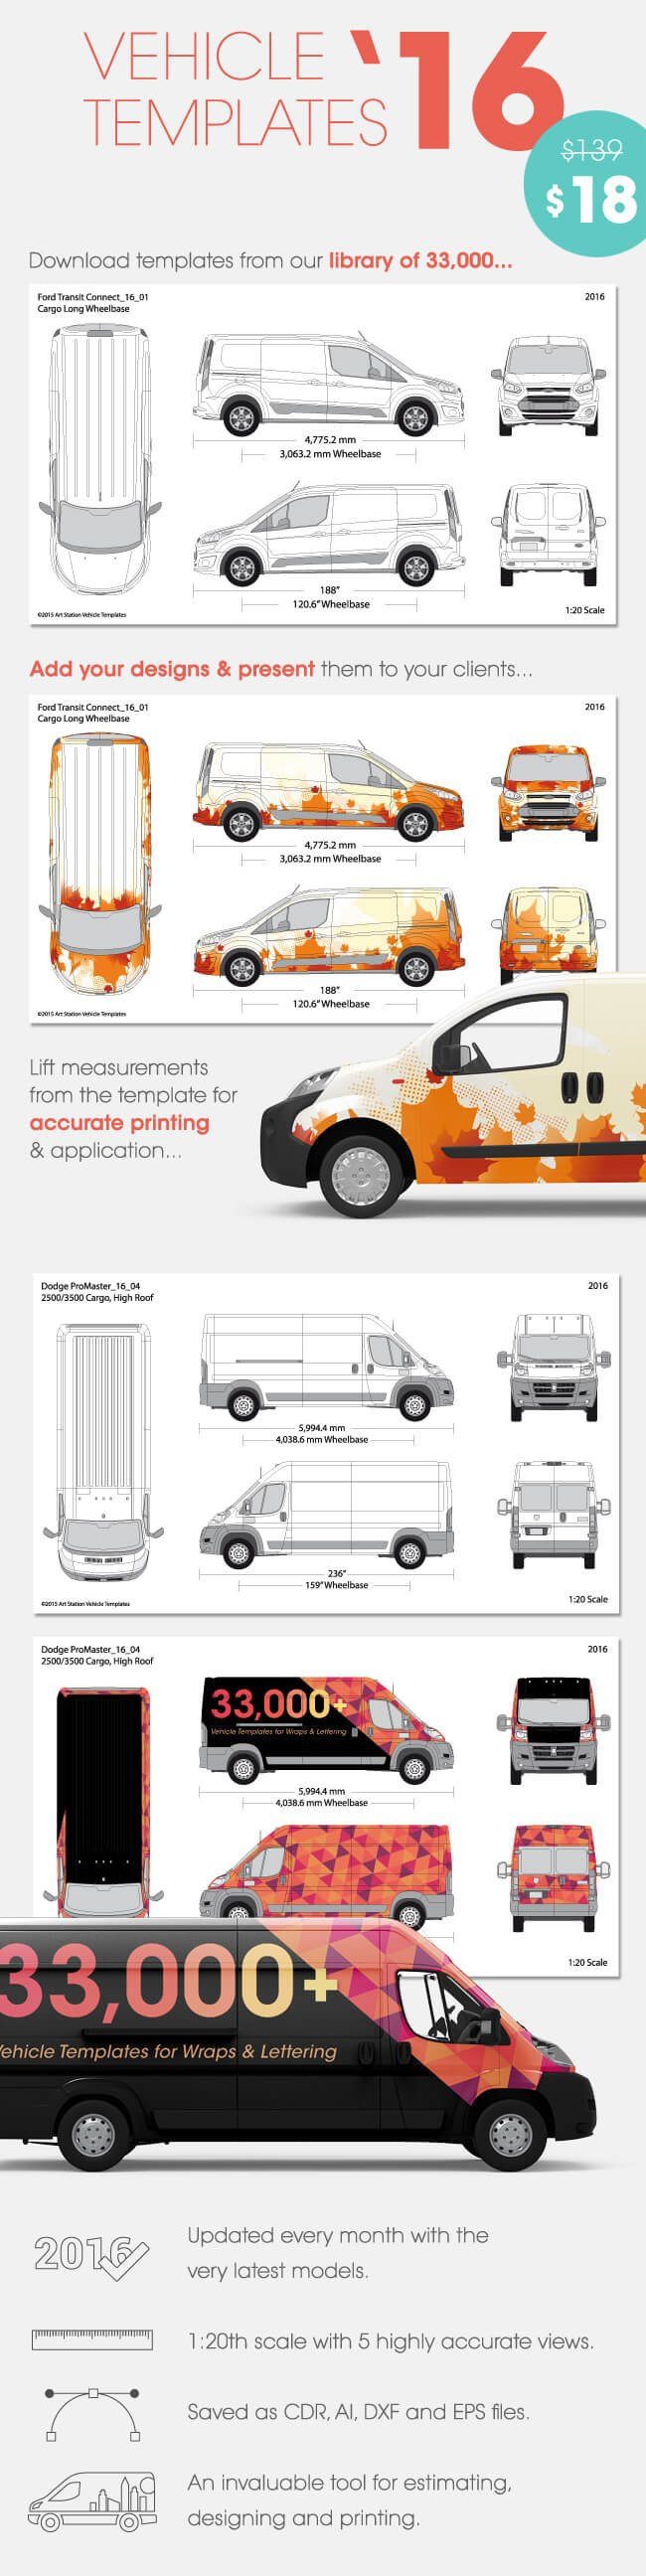 Vehicle Wrap Templates Free Downloads Download 50 Vehicle Templates for Wraps and Lettering From